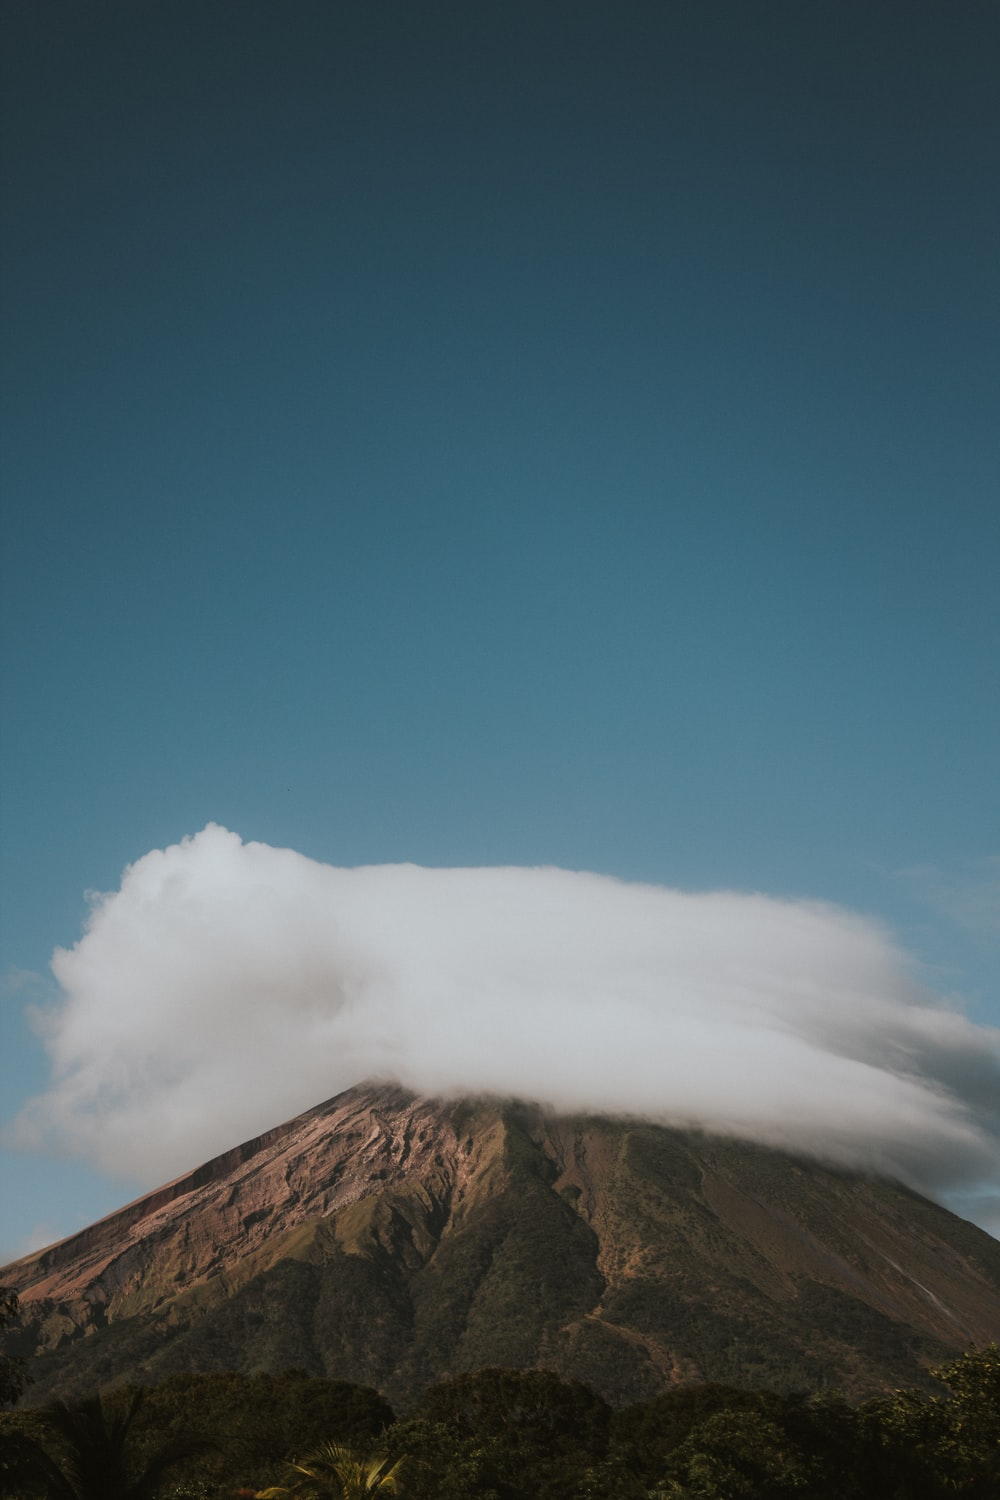 clouds above mountain under clear blue sky